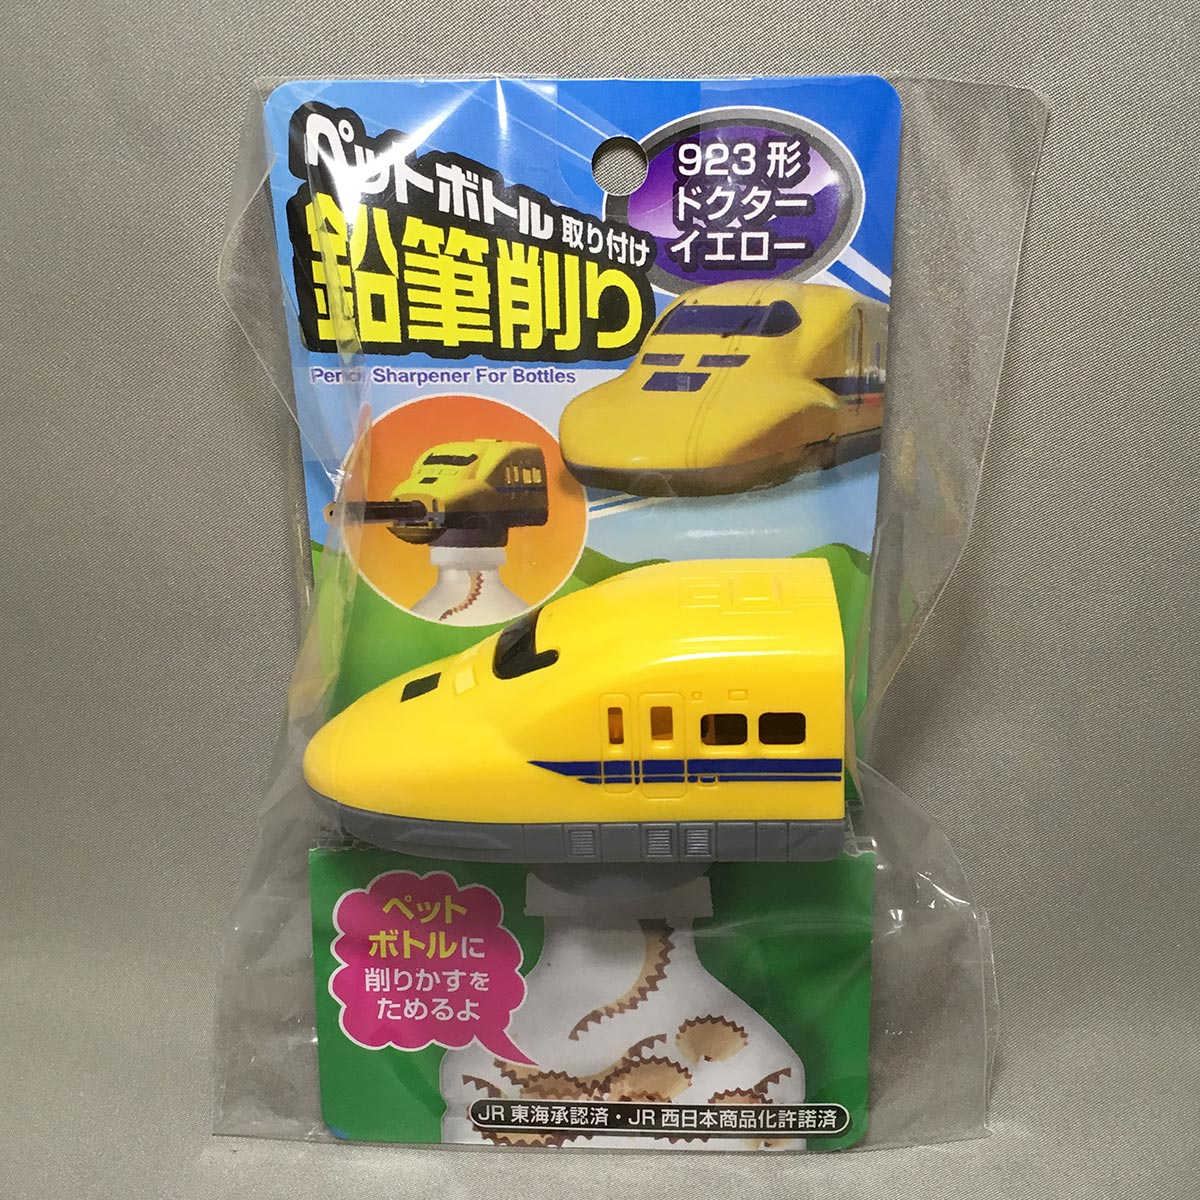 Doctor Yellow Pencil Sharpener - front packaging